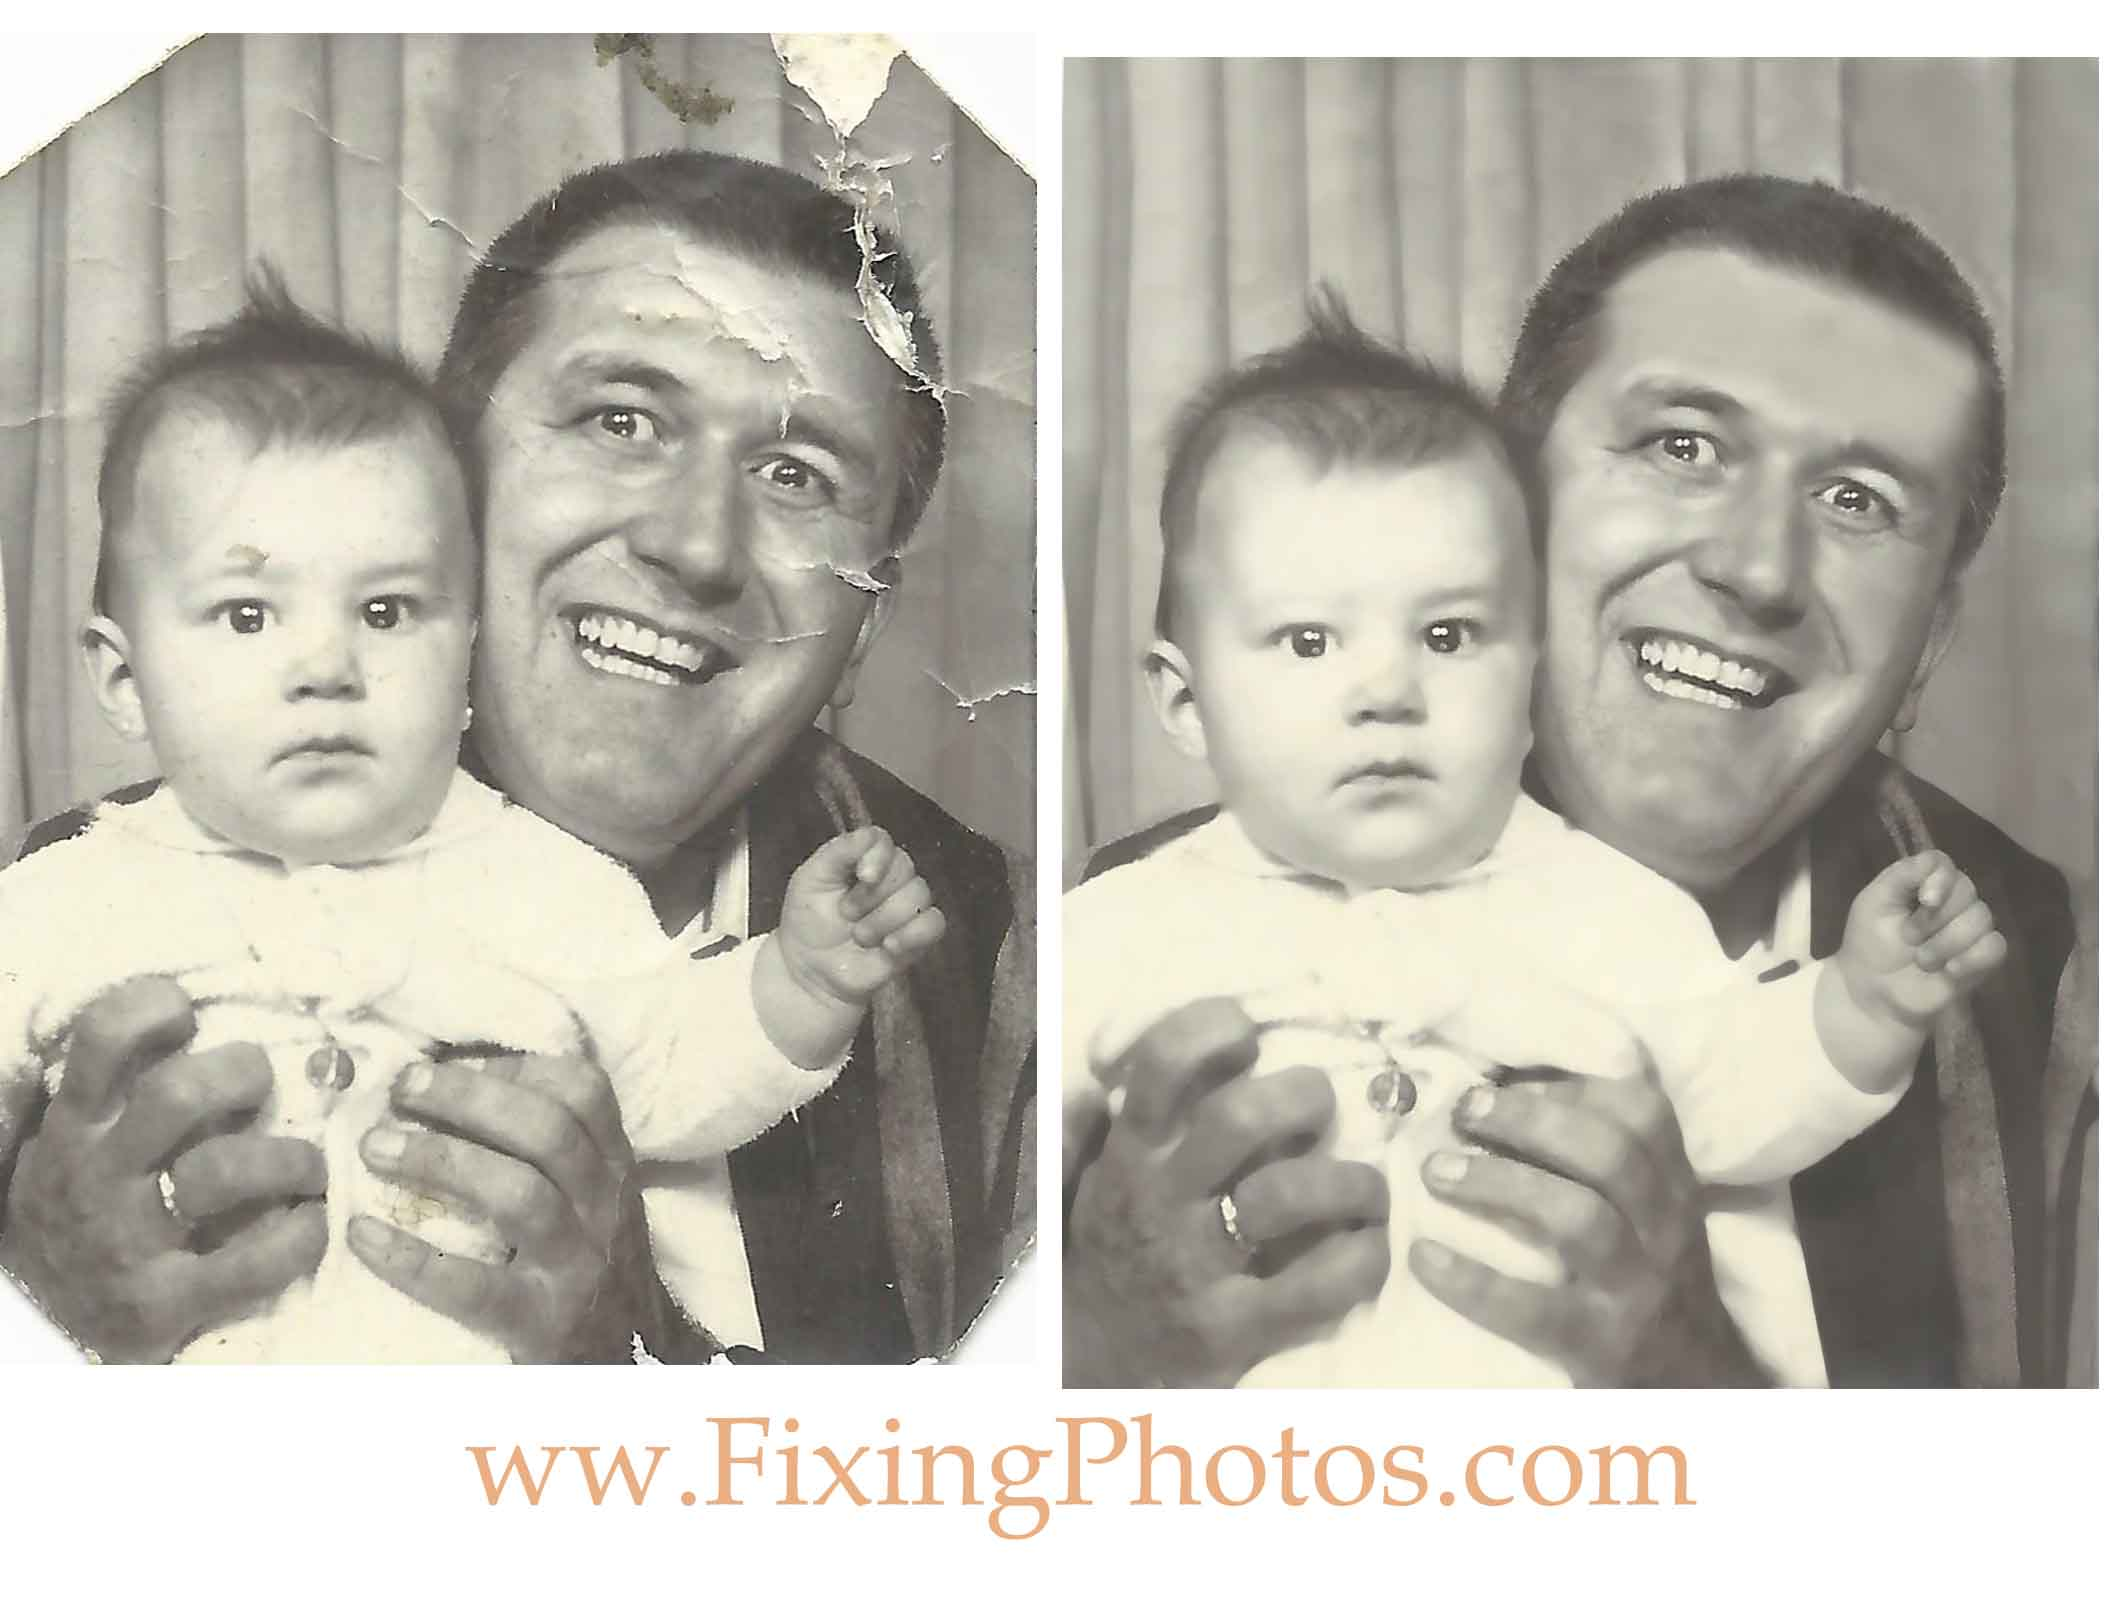 Photo Repair Wizards That Will Restore Your Baby Photos Visit us at https://www.fixingphotos.com For A Free Photo Repair Quote!